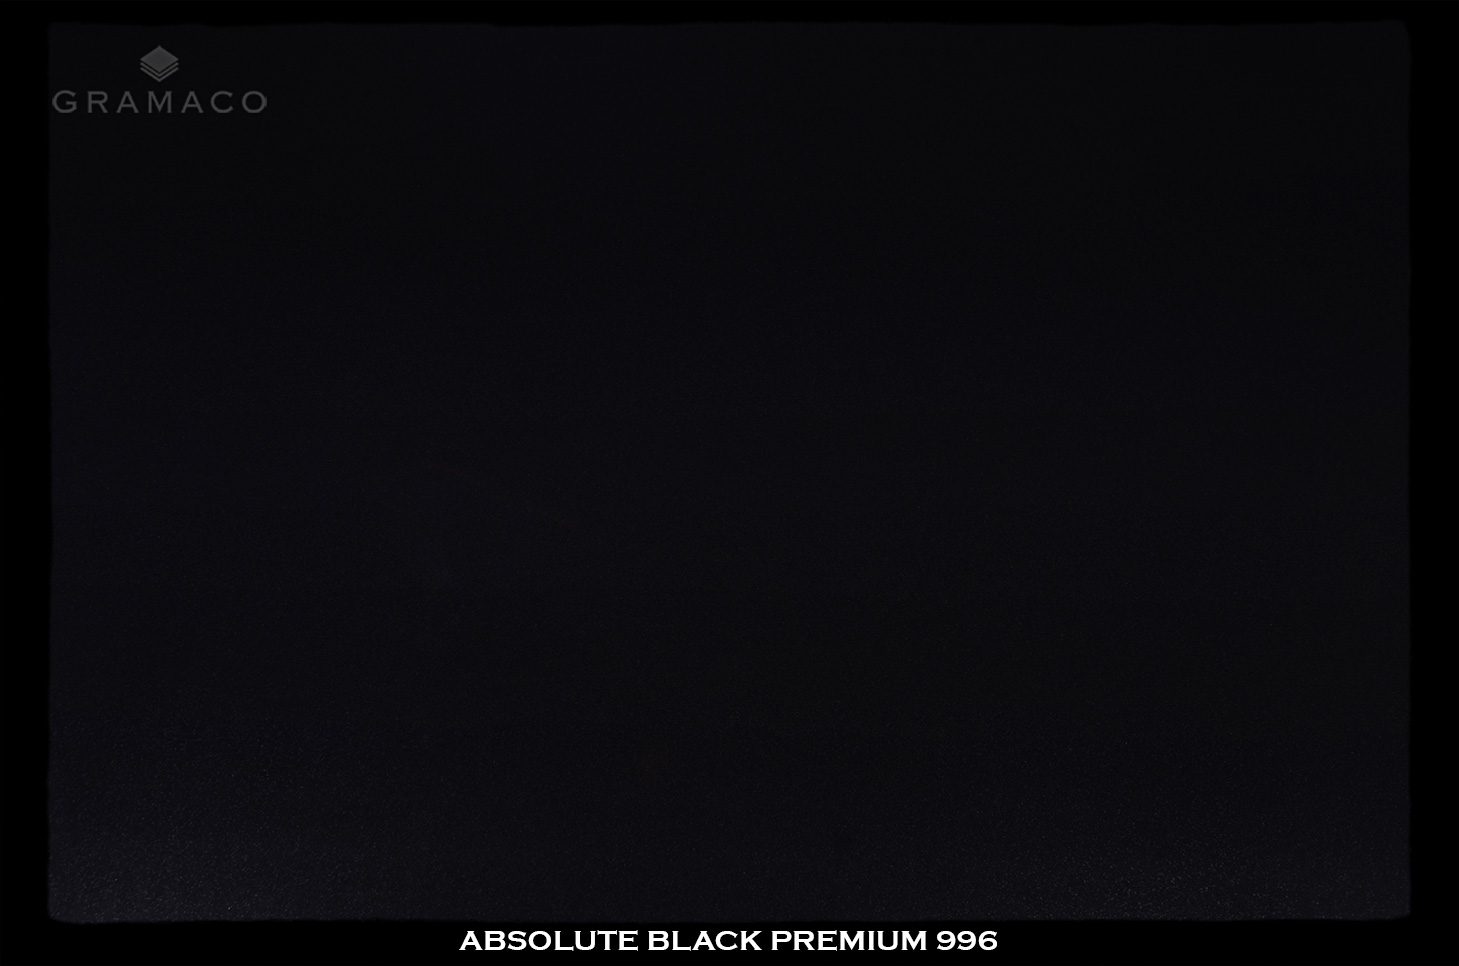 absolute-black-premium-996